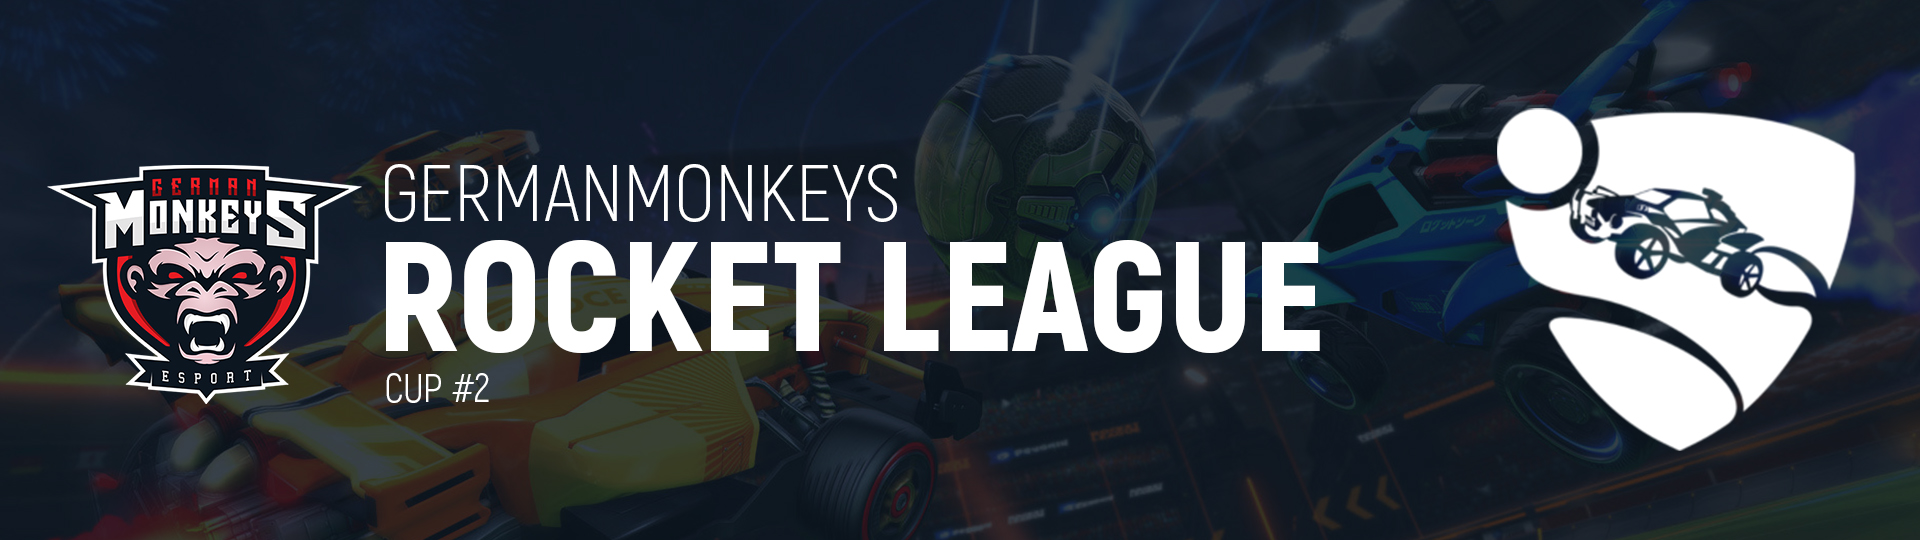 sieger-des-rocket-league-cup-2